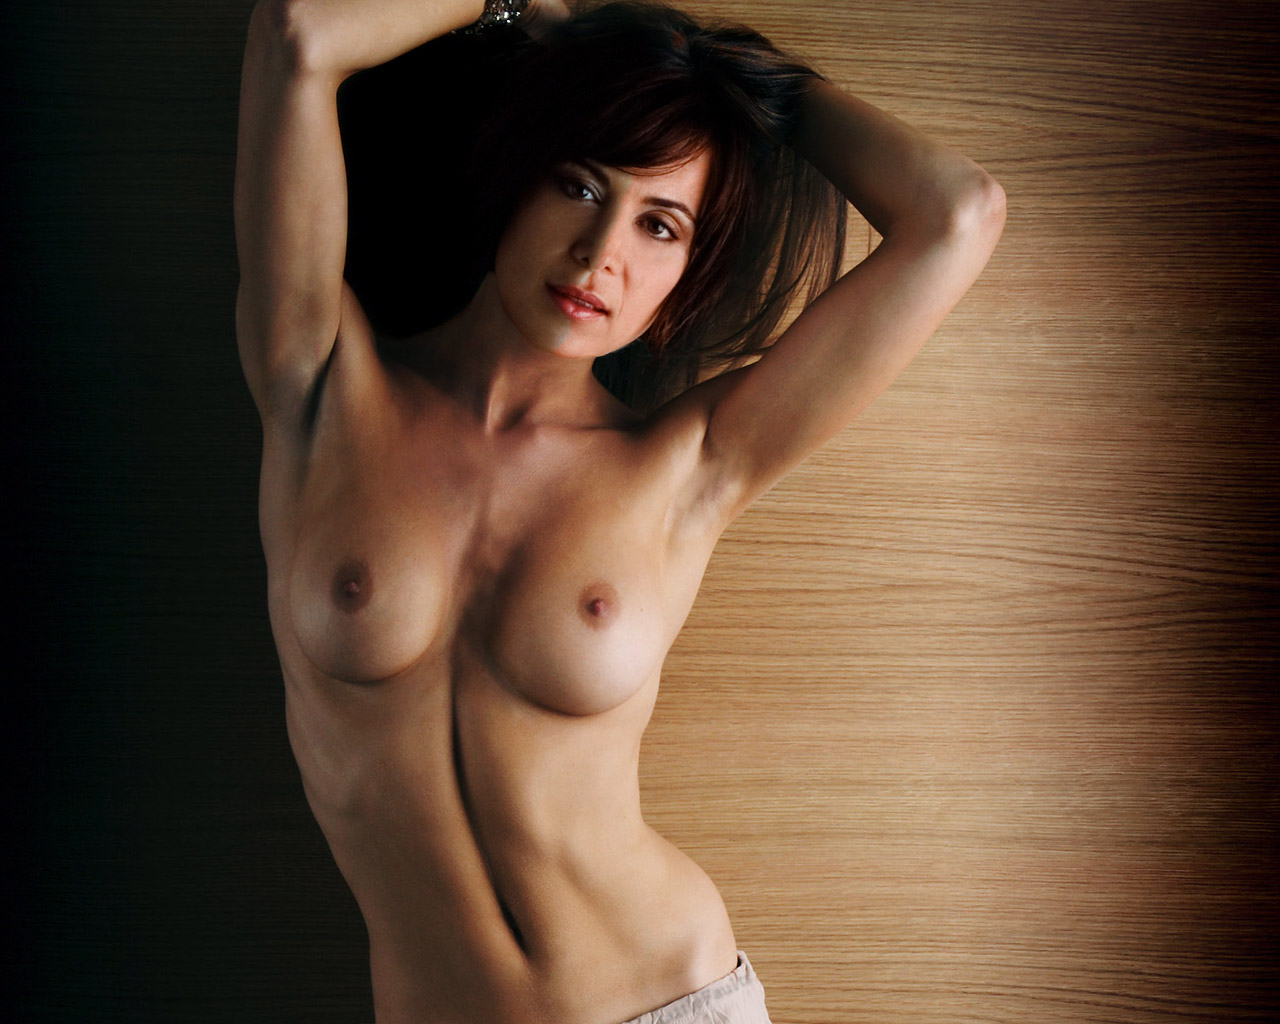 Catherine bell nude photos exposed xxx